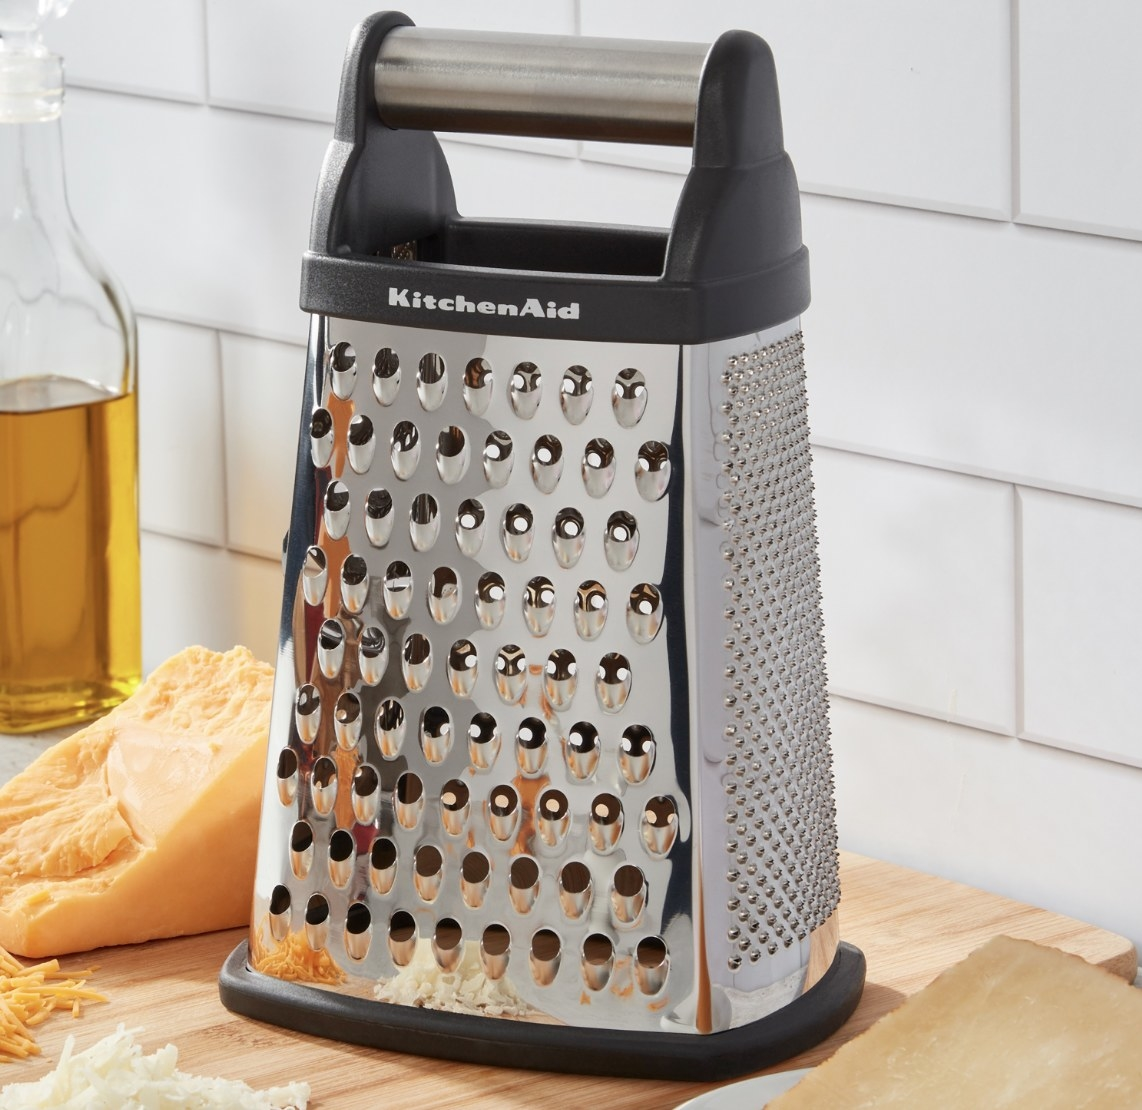 """The stainless steel grater says """"Kitchenaid"""" and has a black handle"""